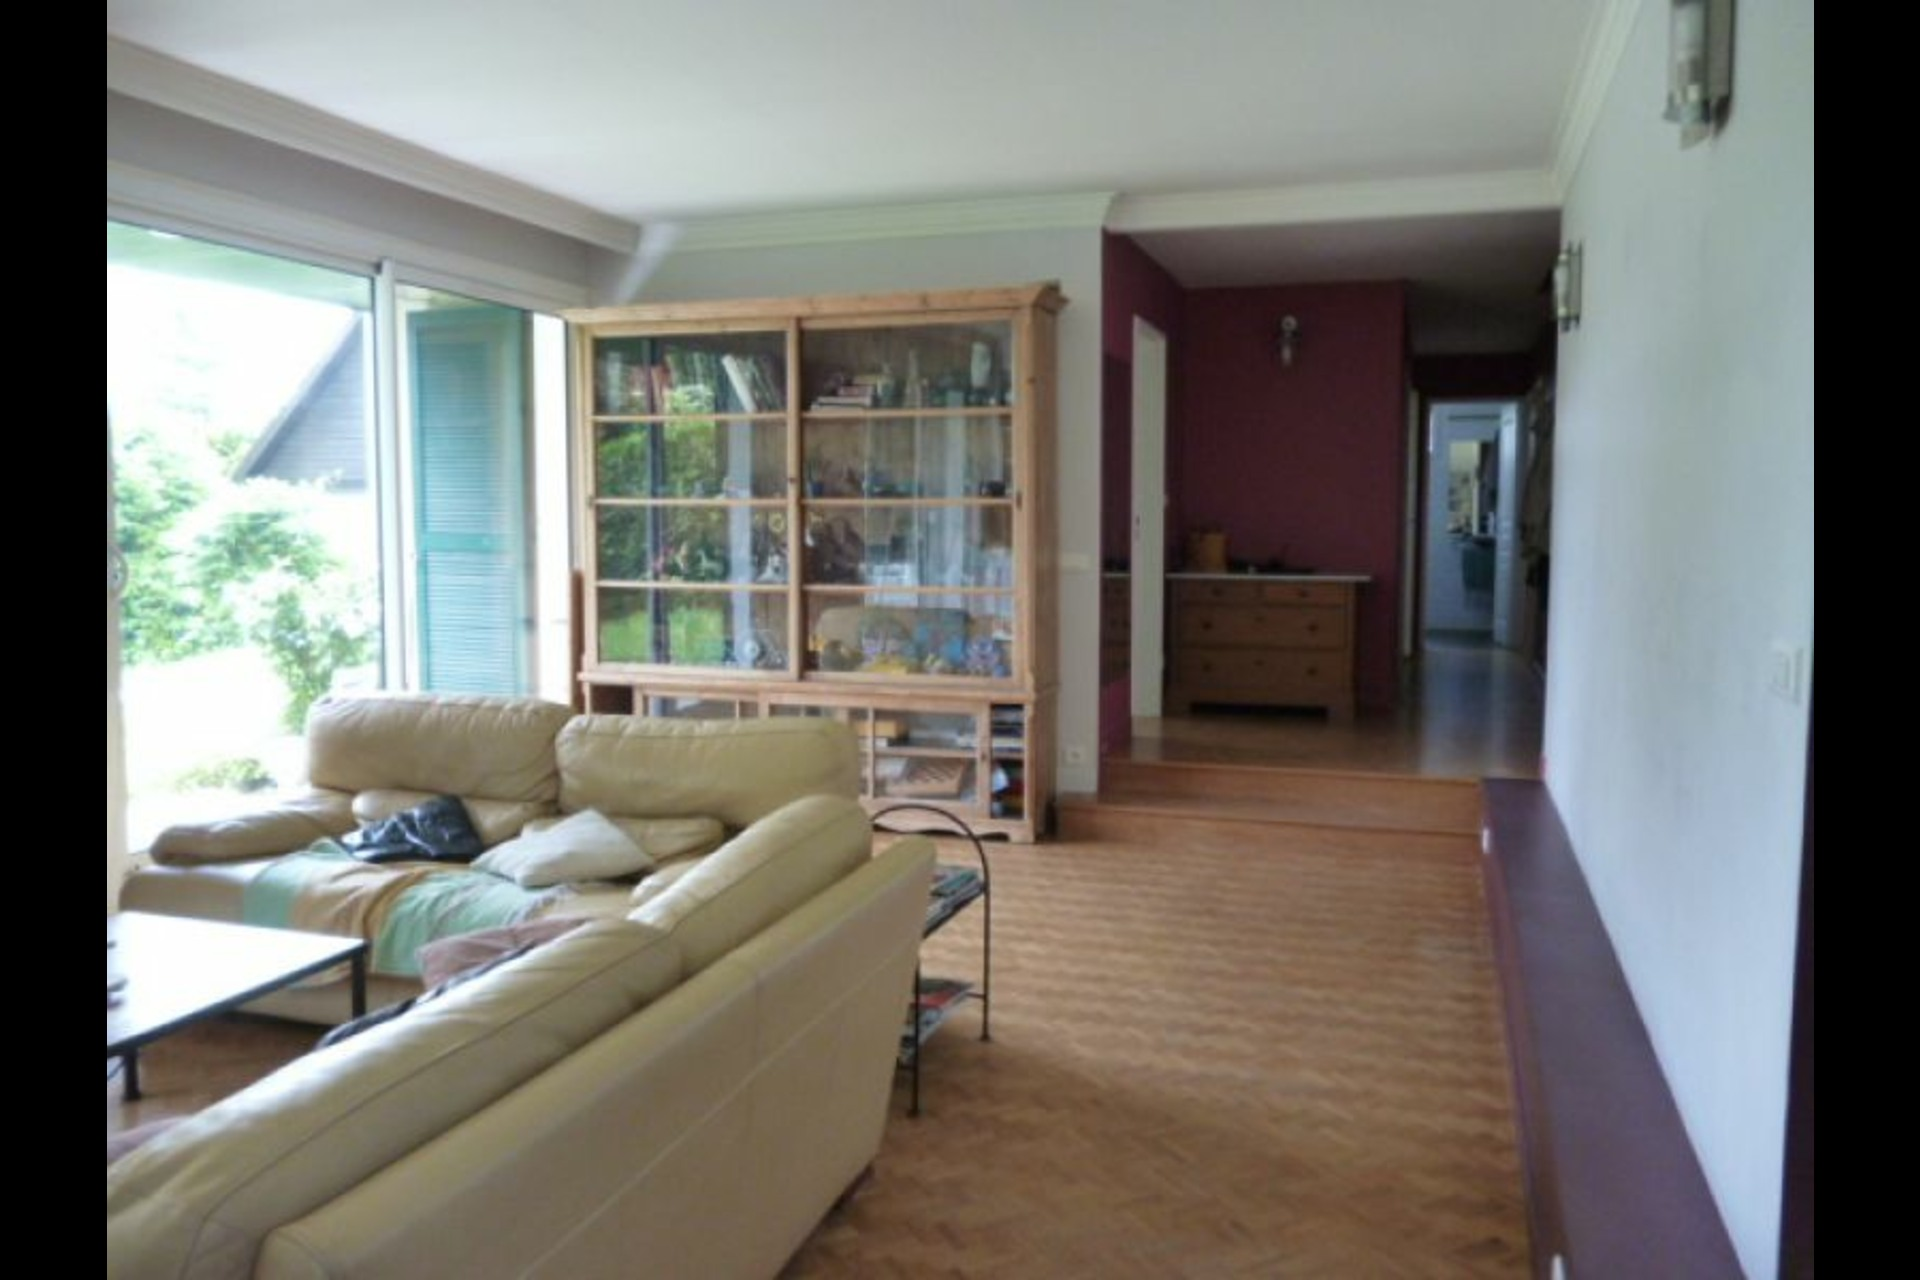 image 2 - House For rent chavenay - 8 rooms